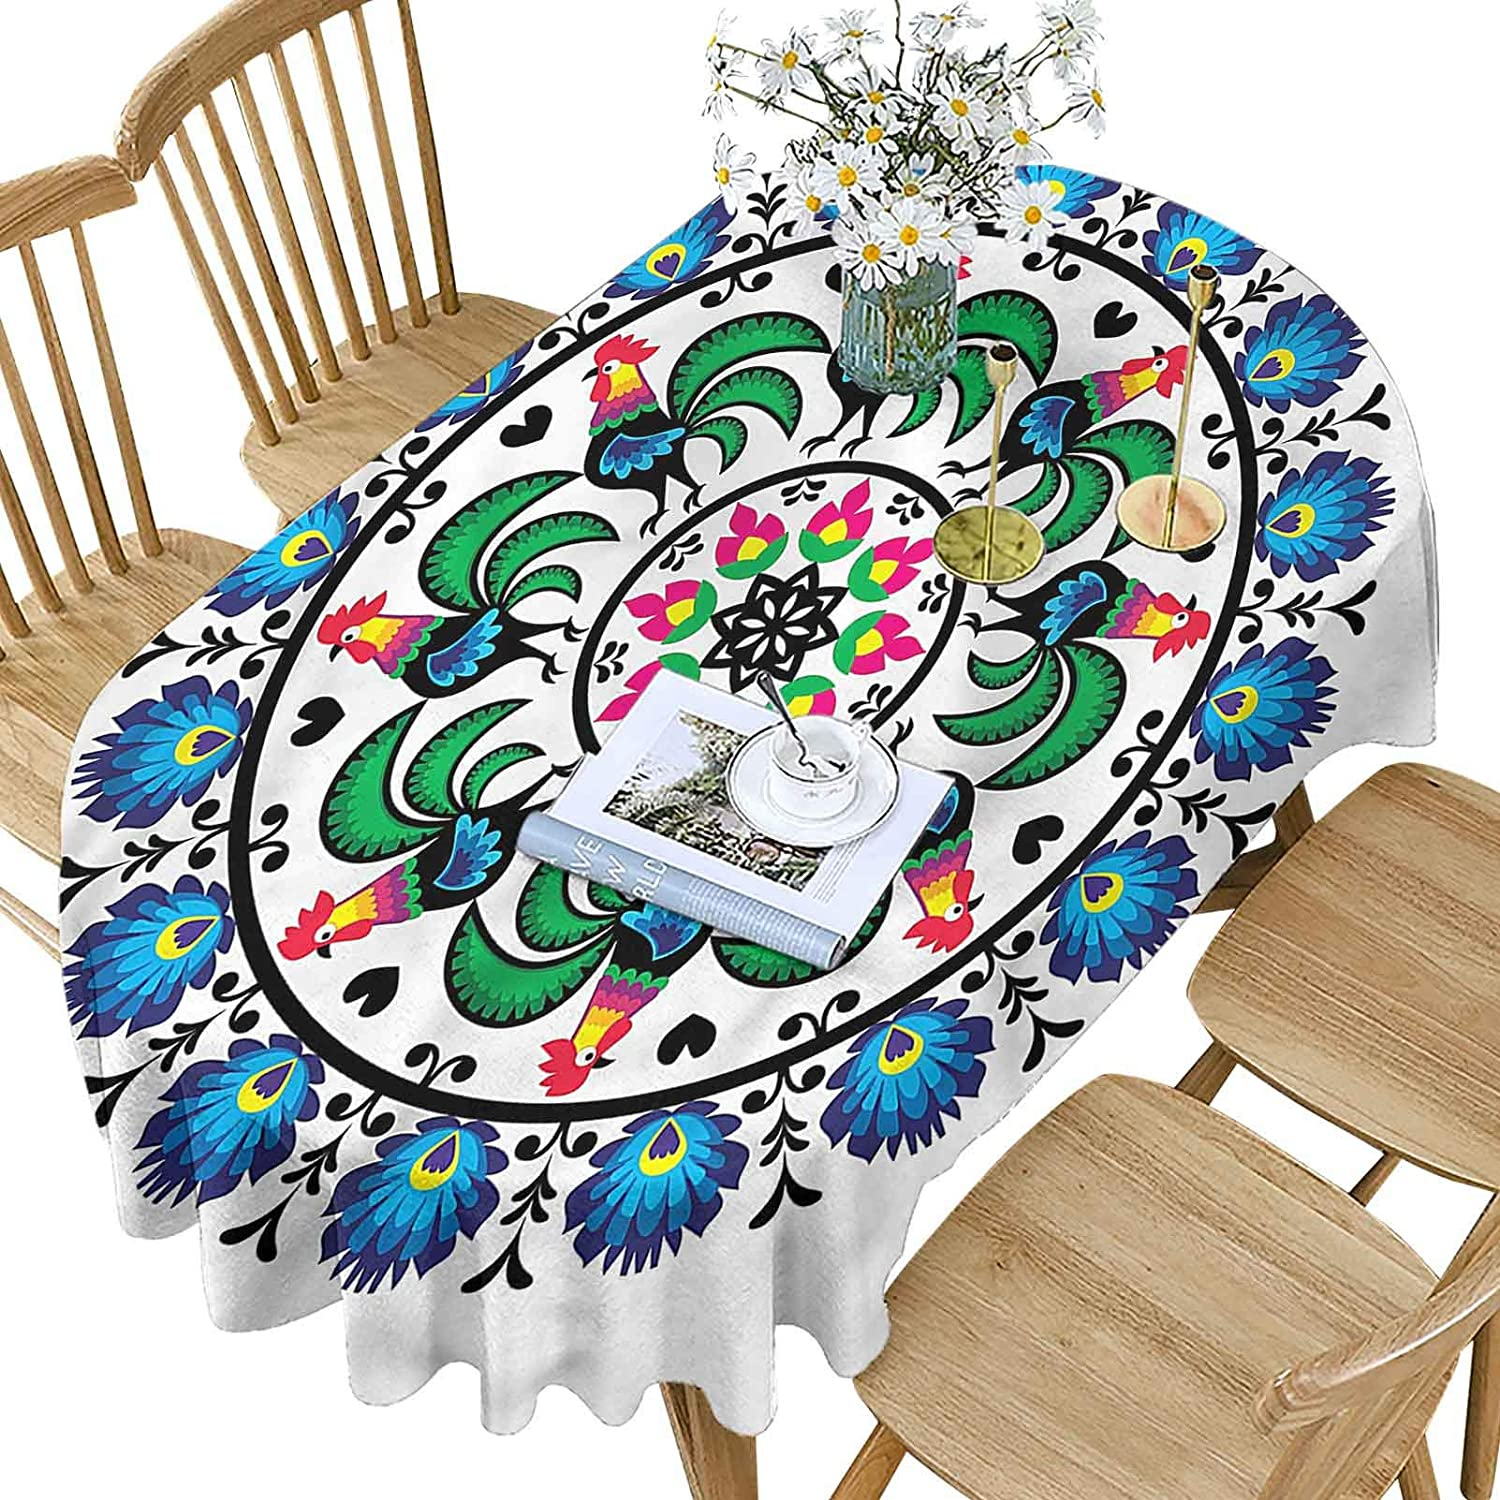 Gallus Polyester Oval Tablecloth Patter Flowers OFFicial Tulsa Mall site Rooster Colorful